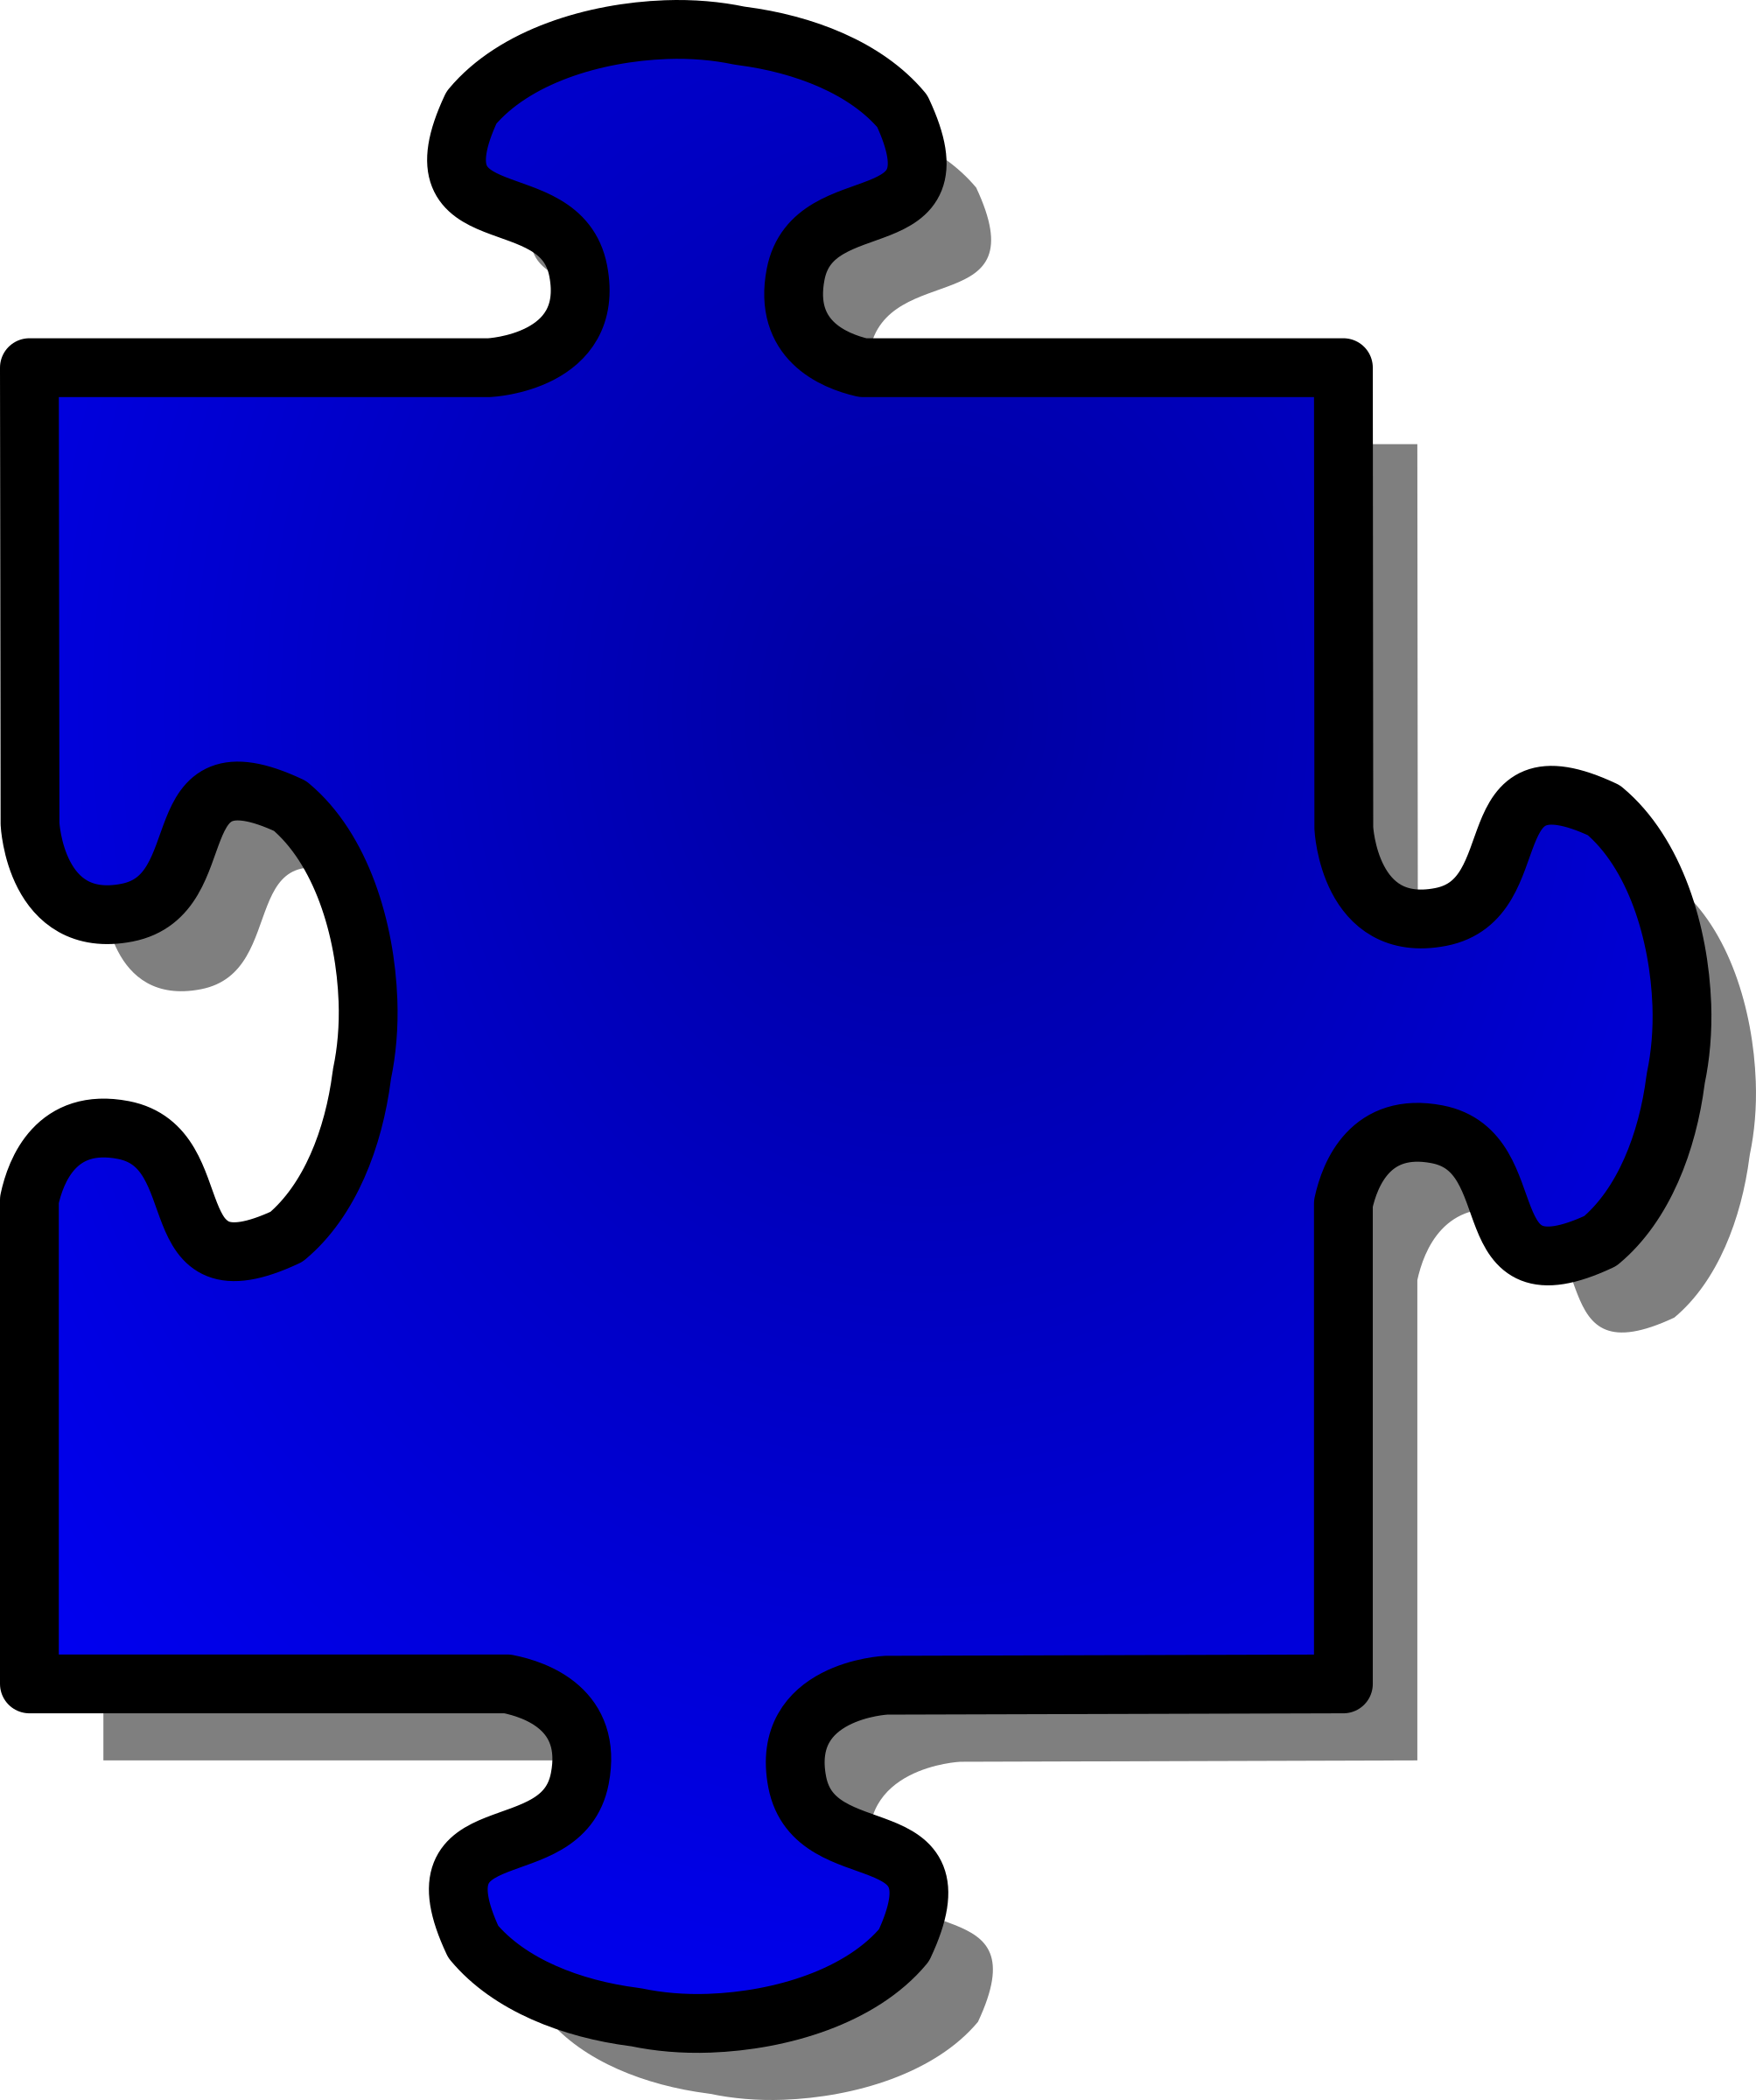 Blue Jigsaw piece 05 by nicubunu